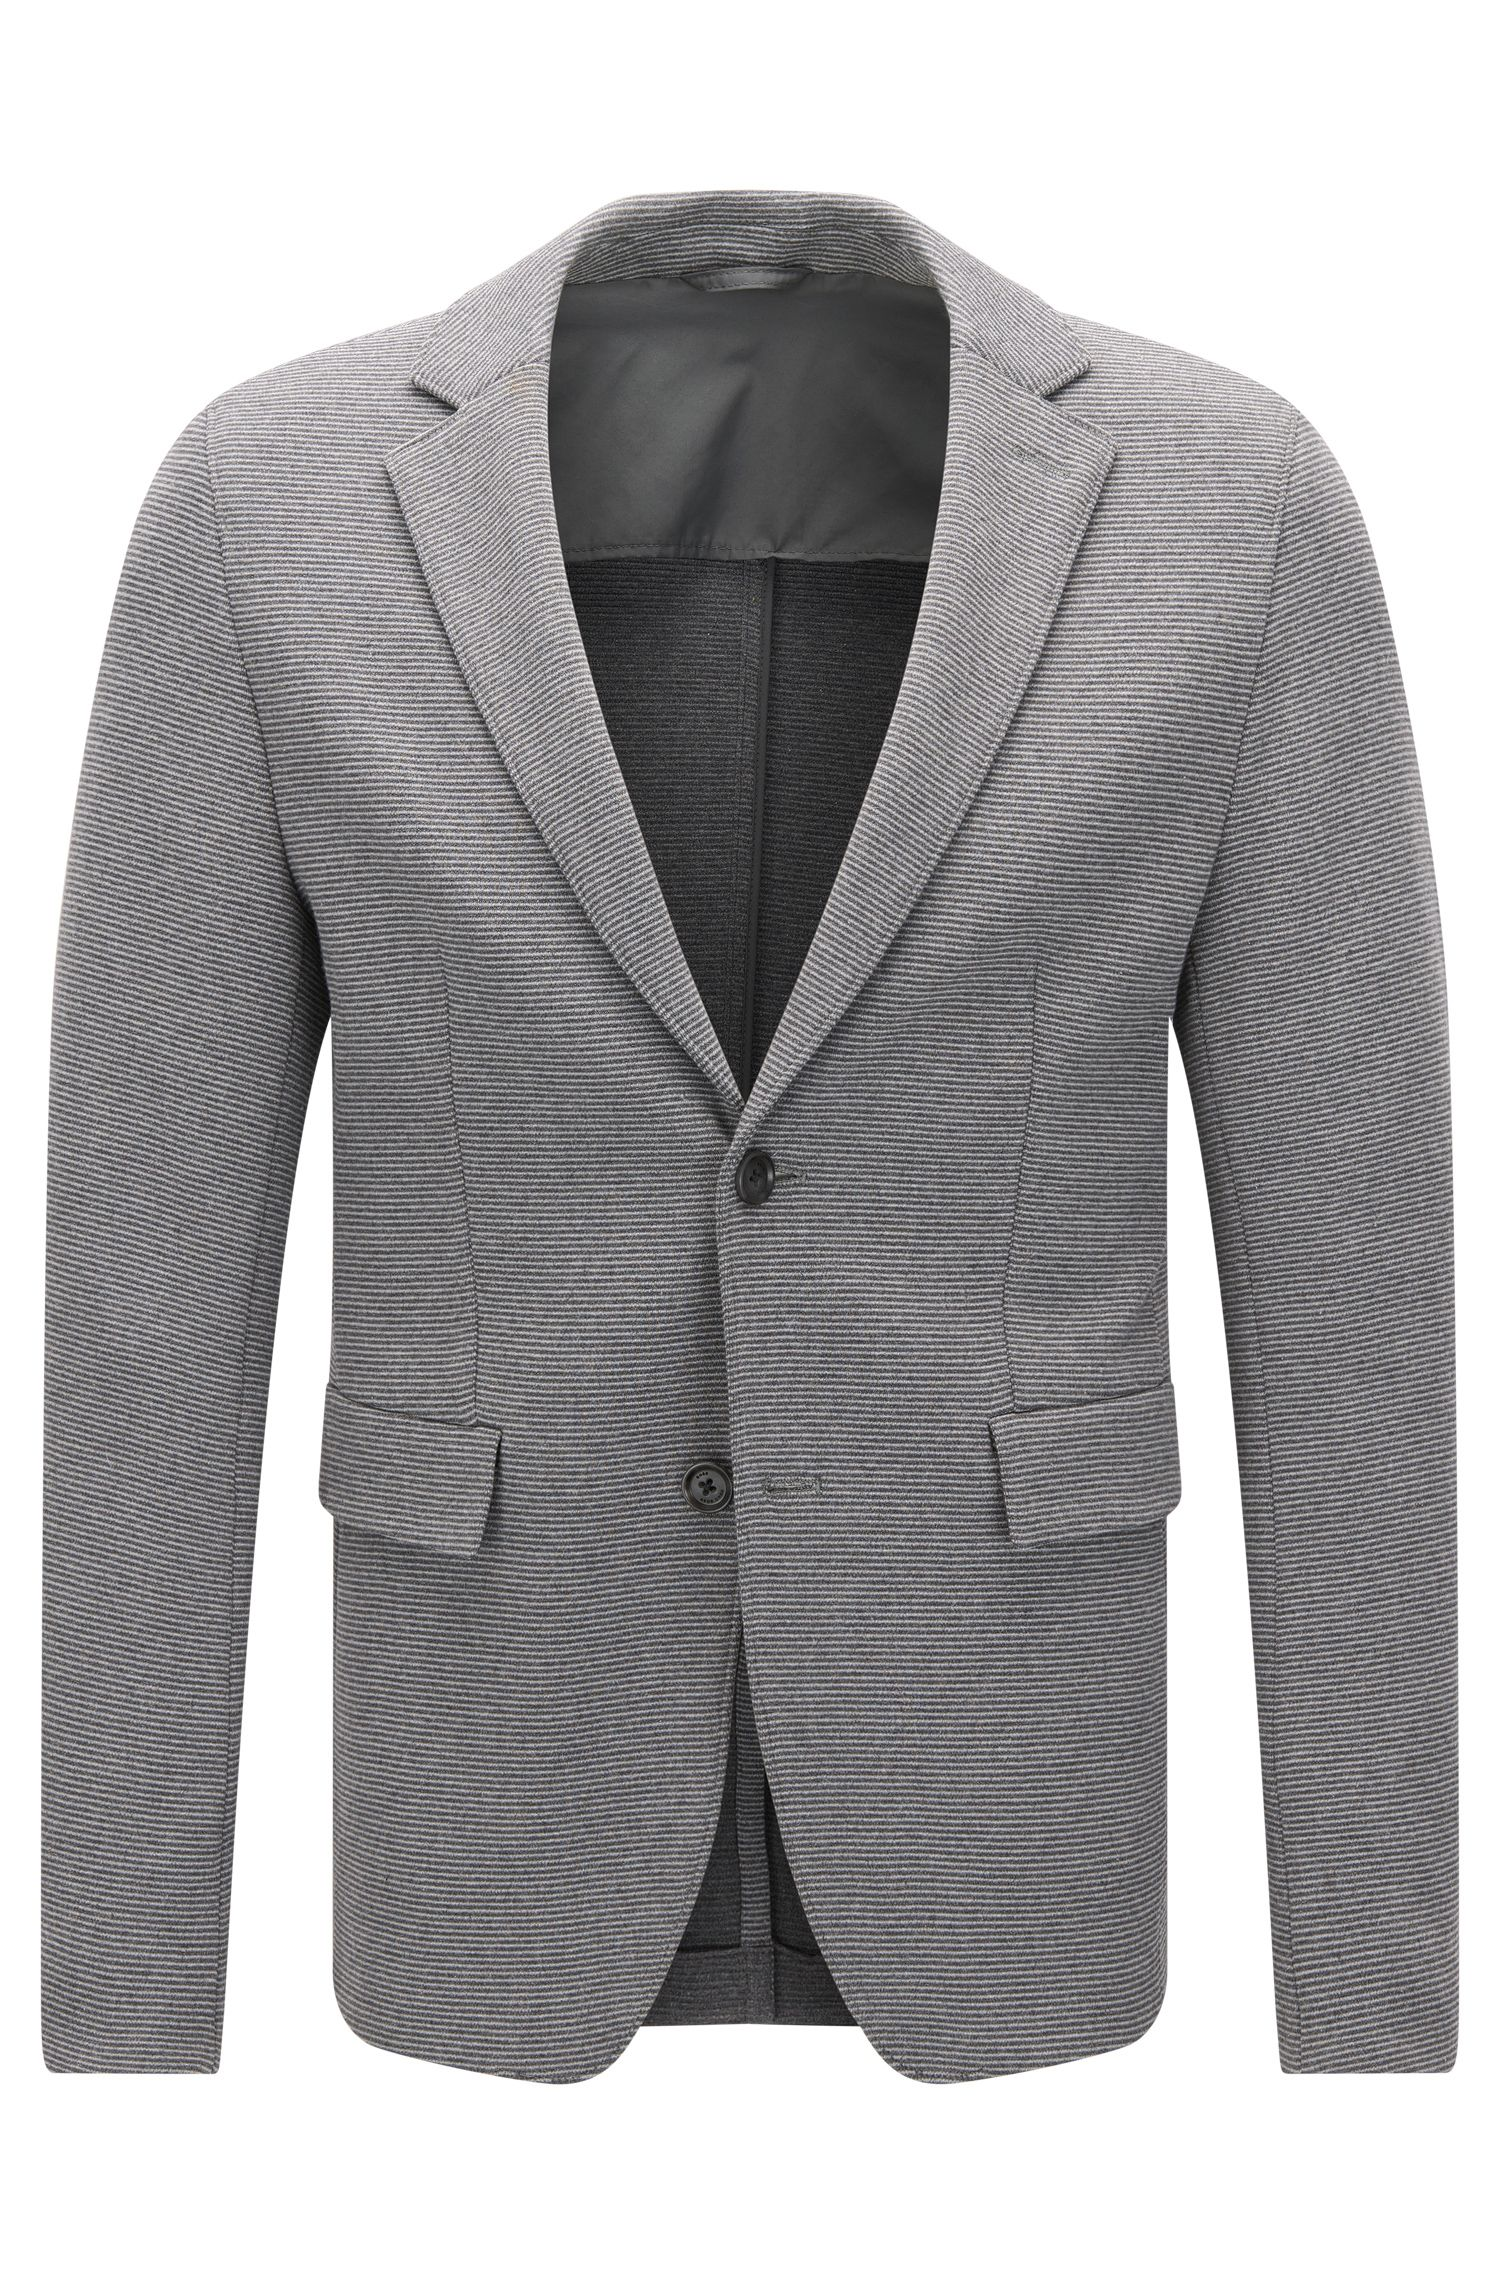 Extra-slim-fit jacket in a textured stretch cotton blend